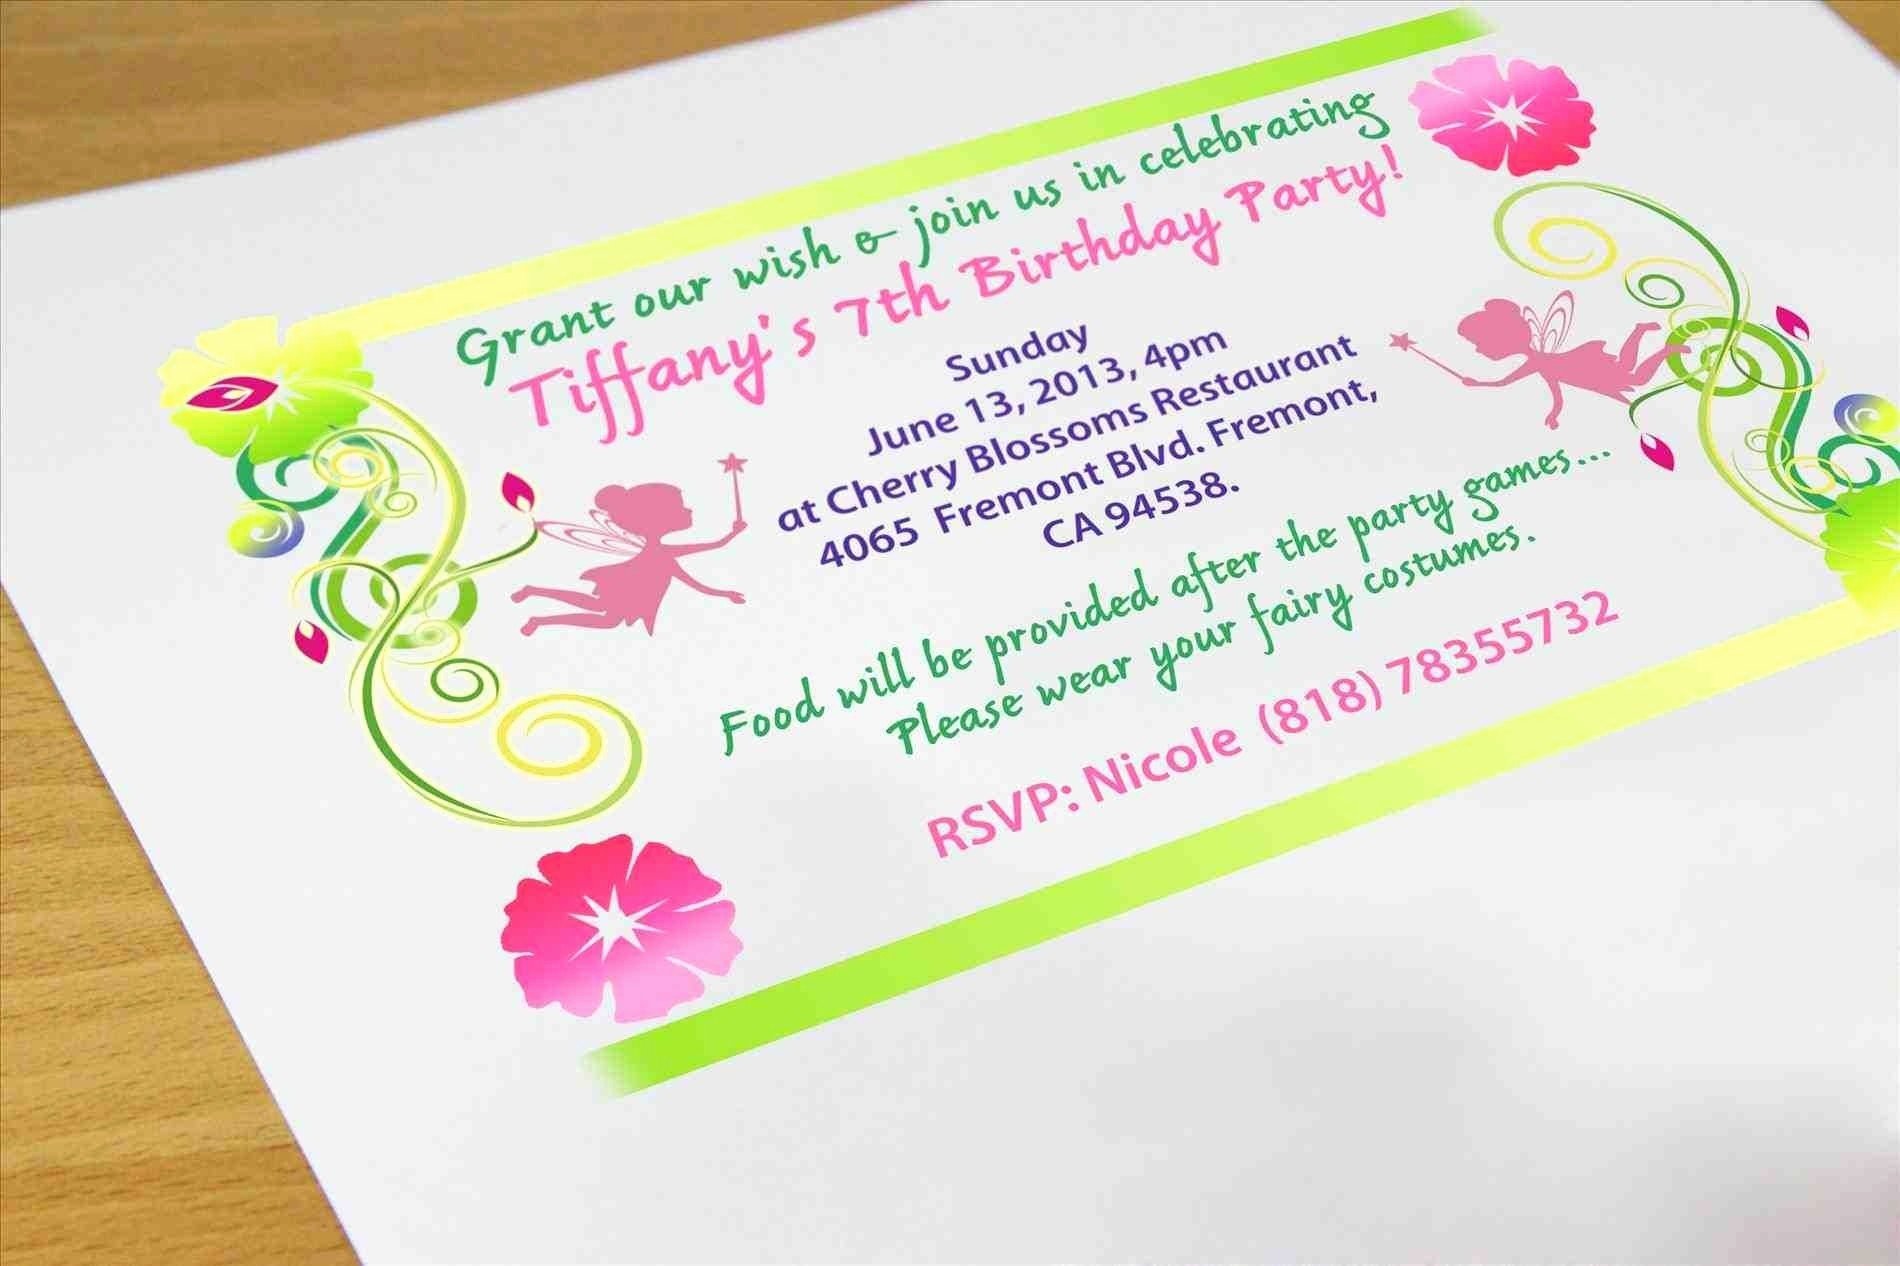 7th birthday party invitation wording ; invitation-wording-for-slumber-party-new-fice-lunch-invitation-wording-fresh-slumber-party-invitation-of-invitation-wording-for-slumber-party